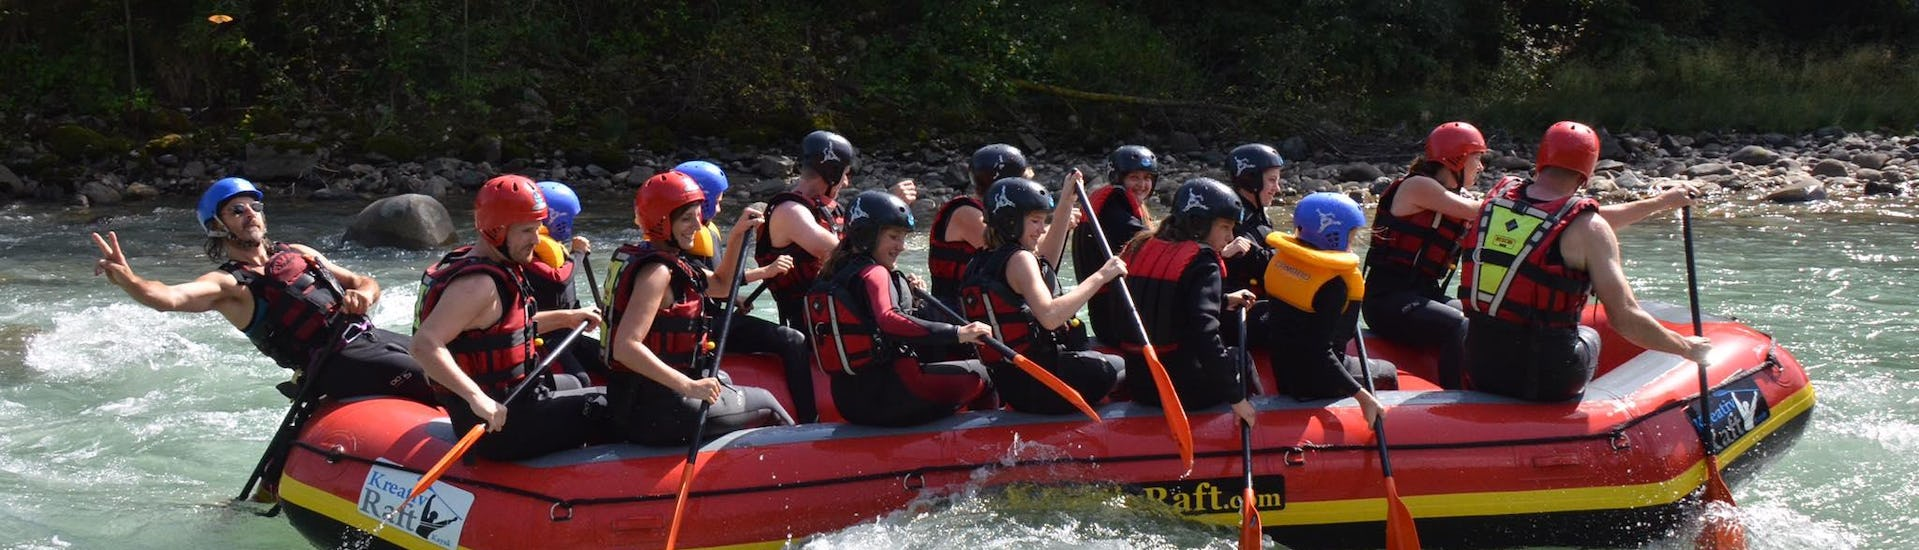 """Rafting """"Action & Safety"""" per Gruppi (15-40 pers.) - Rienza"""